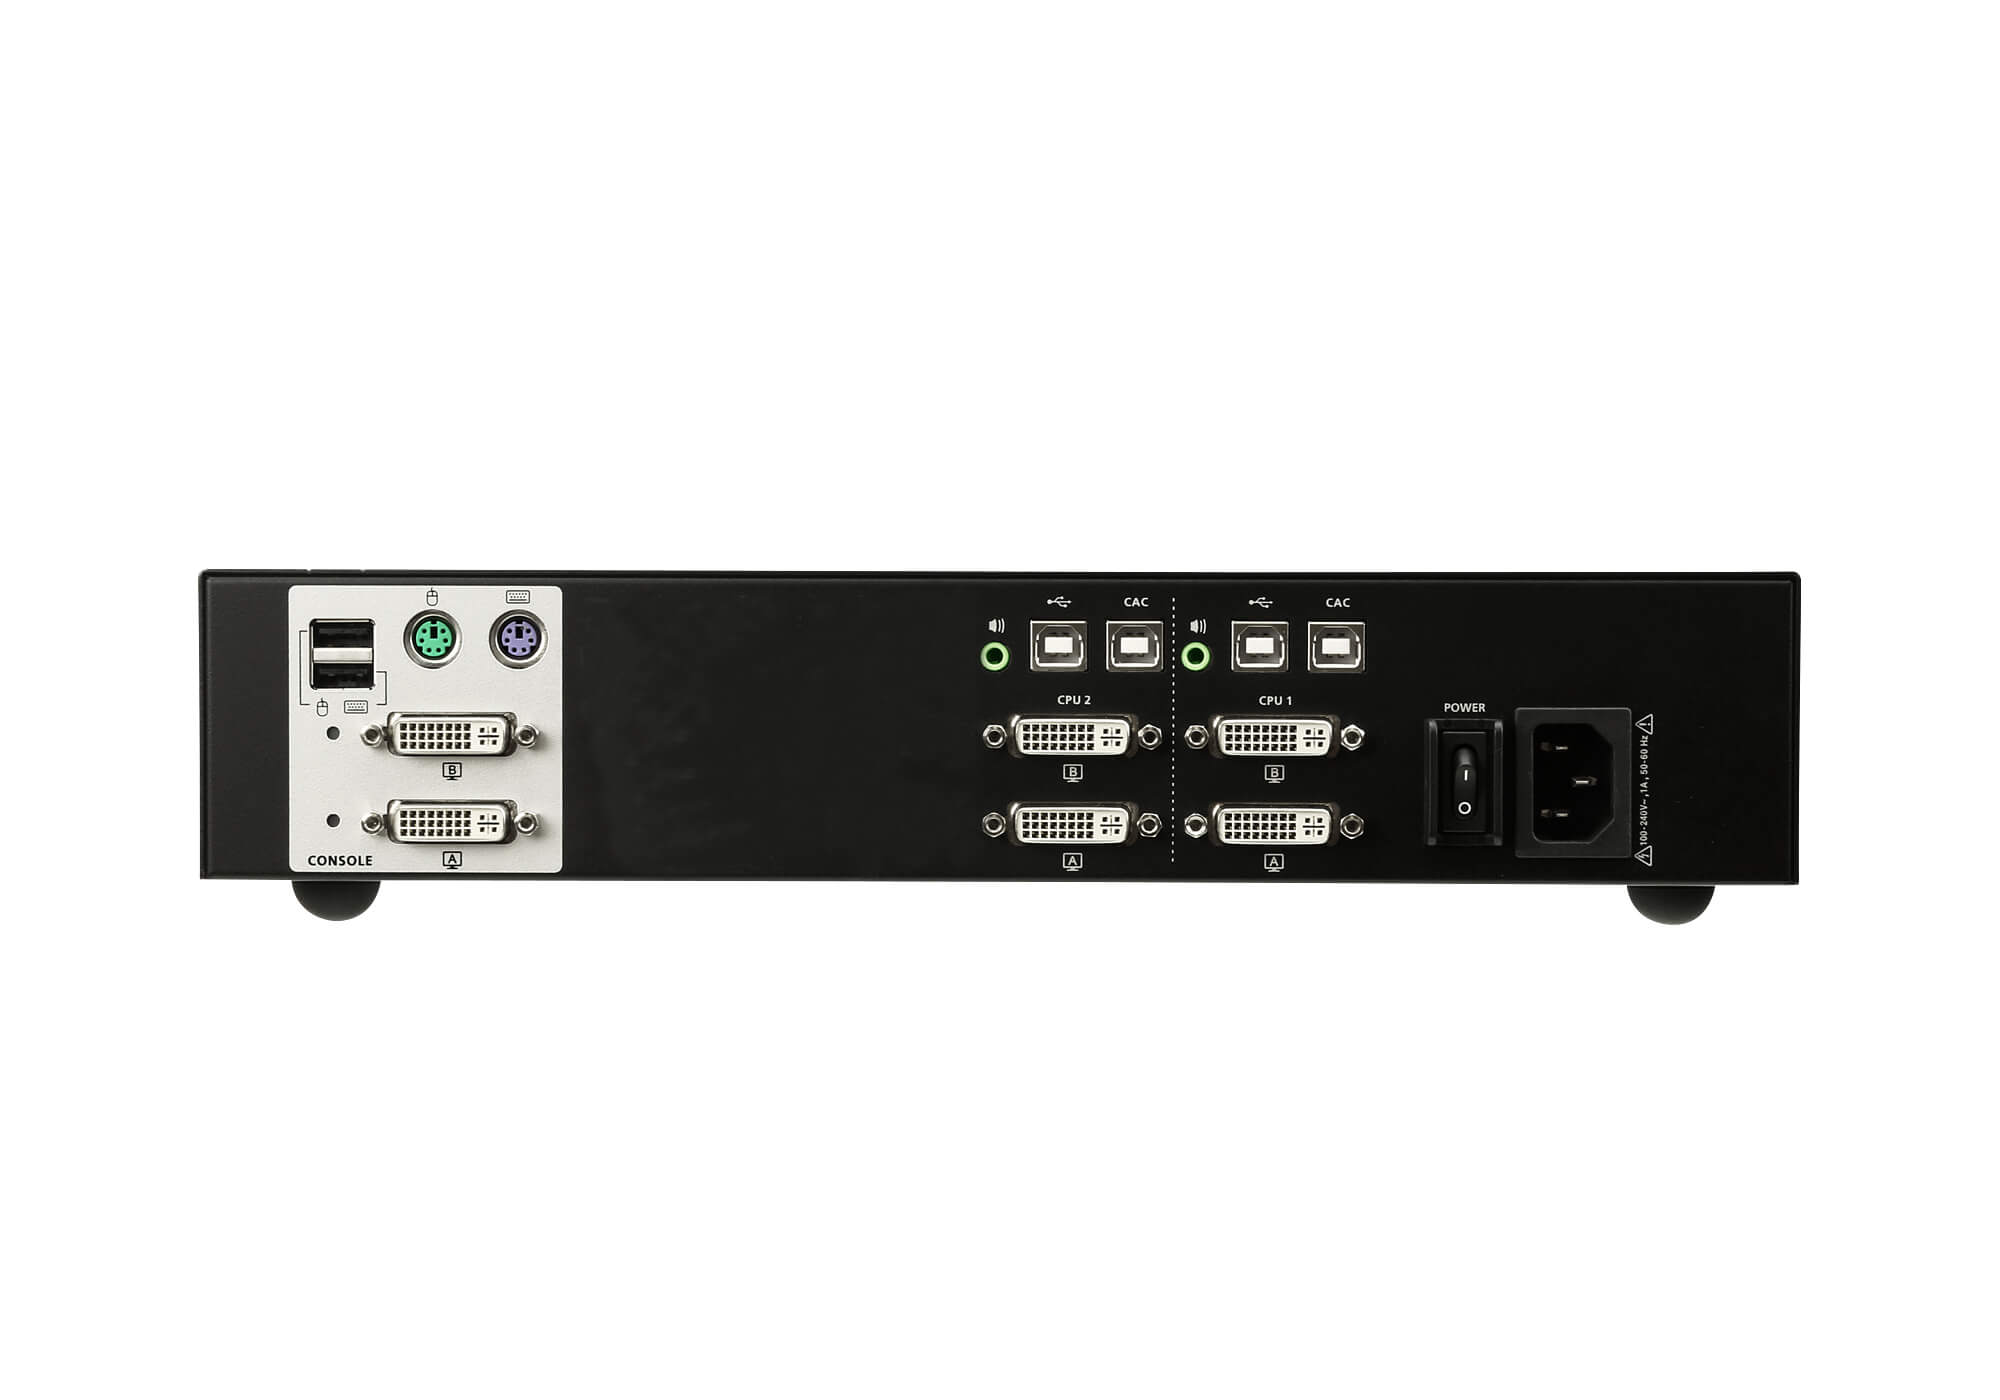 2-Port USB DVI Dual Display Secure KVM Switch (PSS PP v3.0 konform)-2